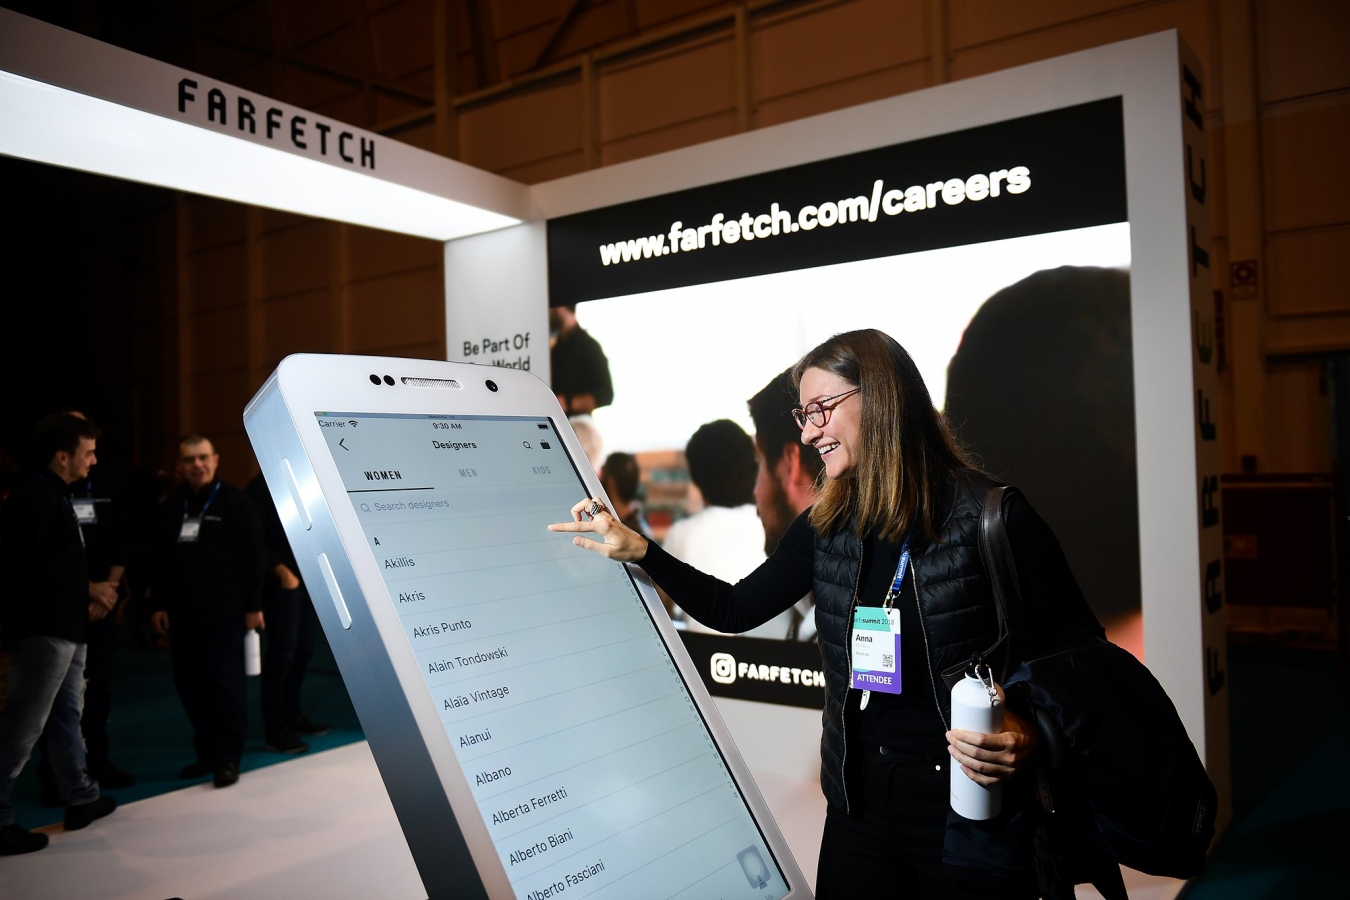 6 November 2018; Farfetch booth during the opening day of Web Summit 2018 at the Altice Arena in Lisbon.